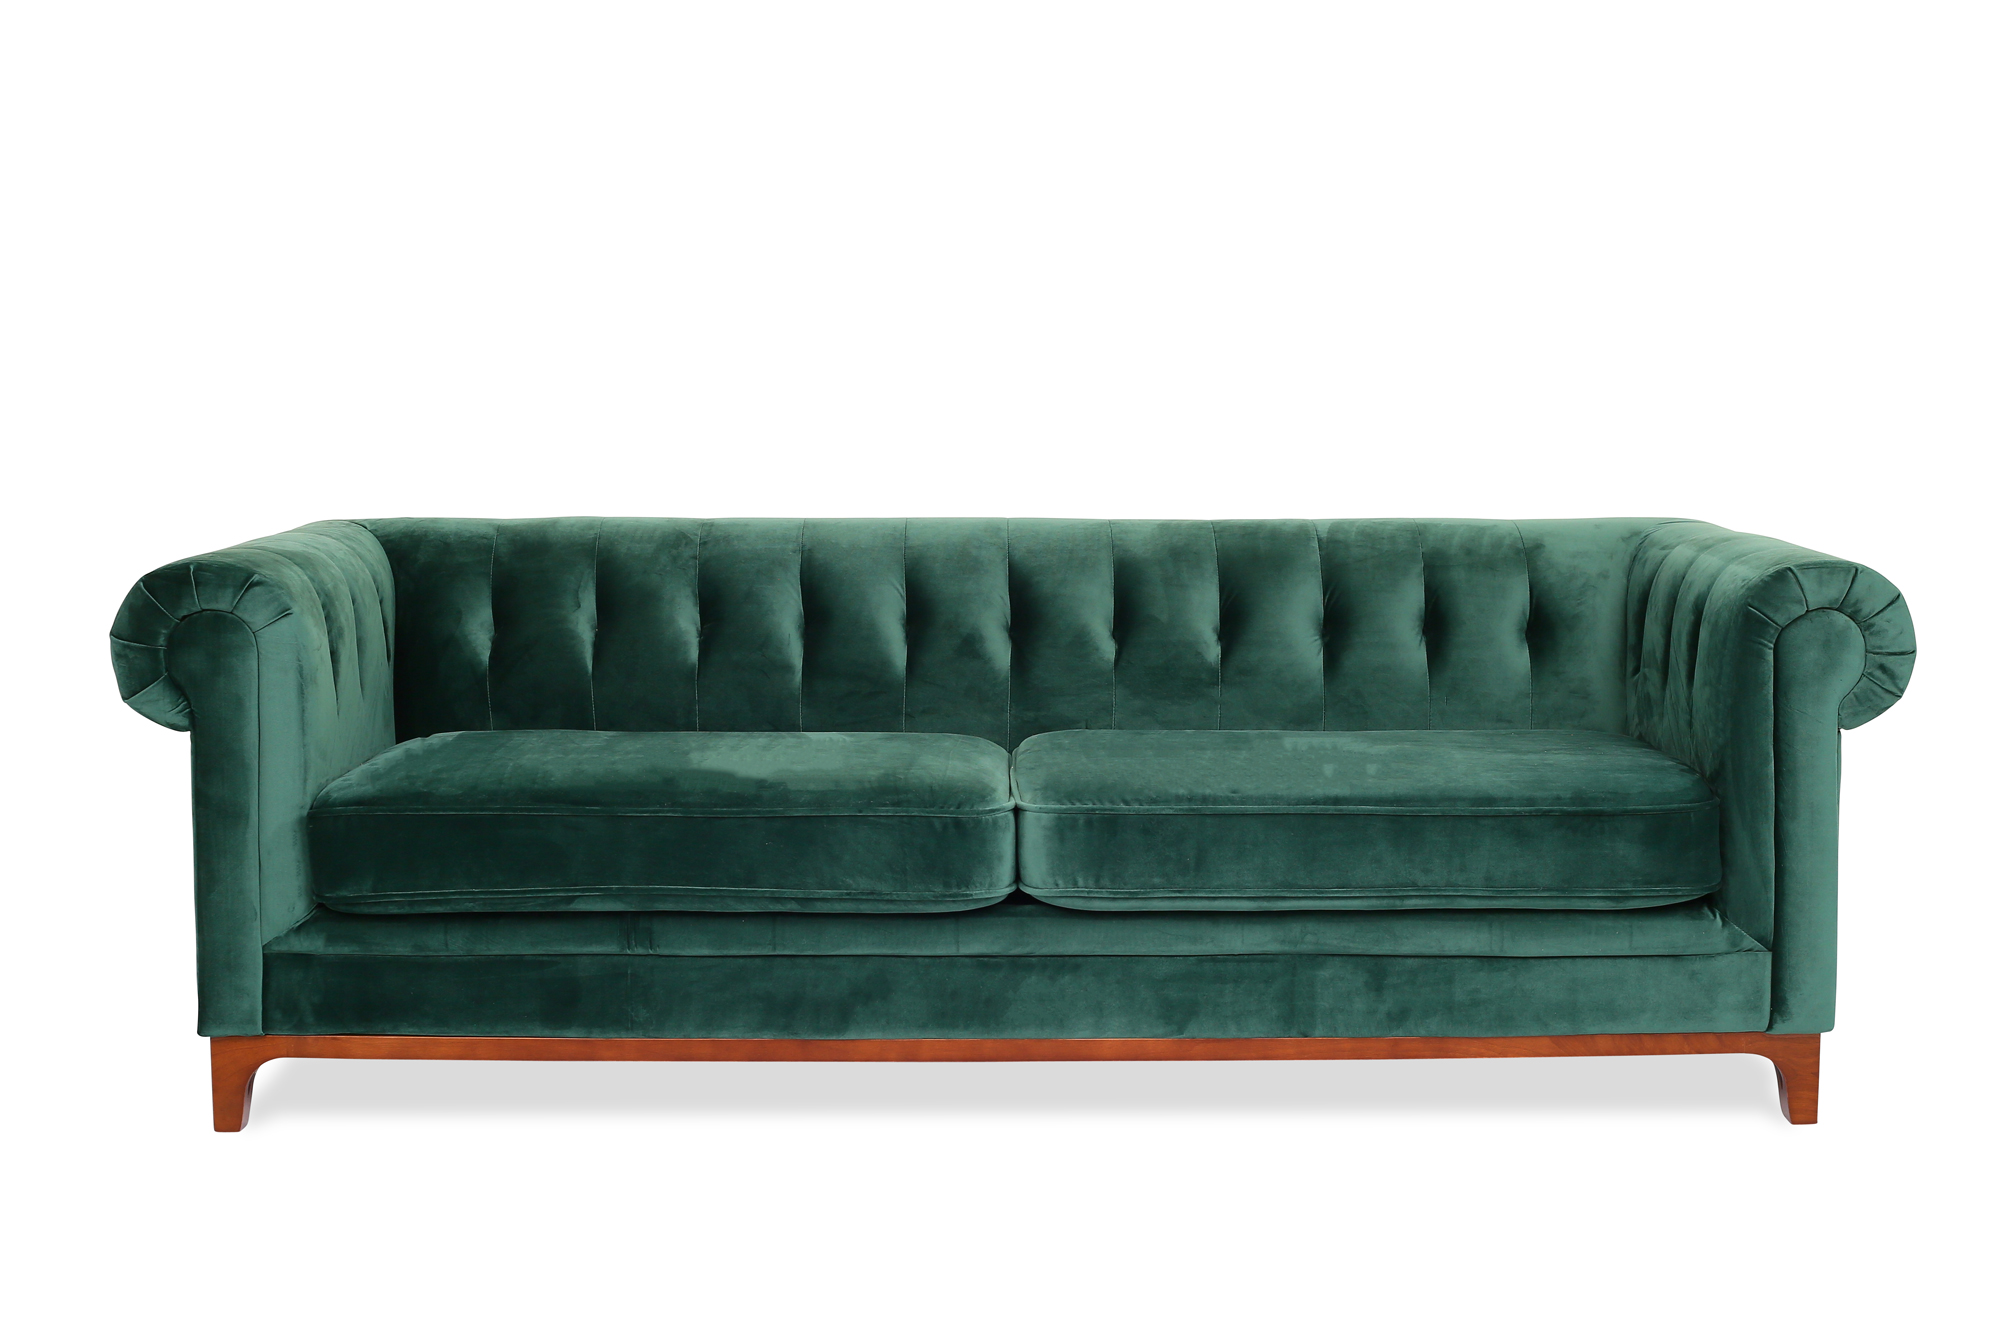 Bring charm and class to your home with this emerald sofa by Edloe Finch. (View at bit.ly/Edloe-Finch)